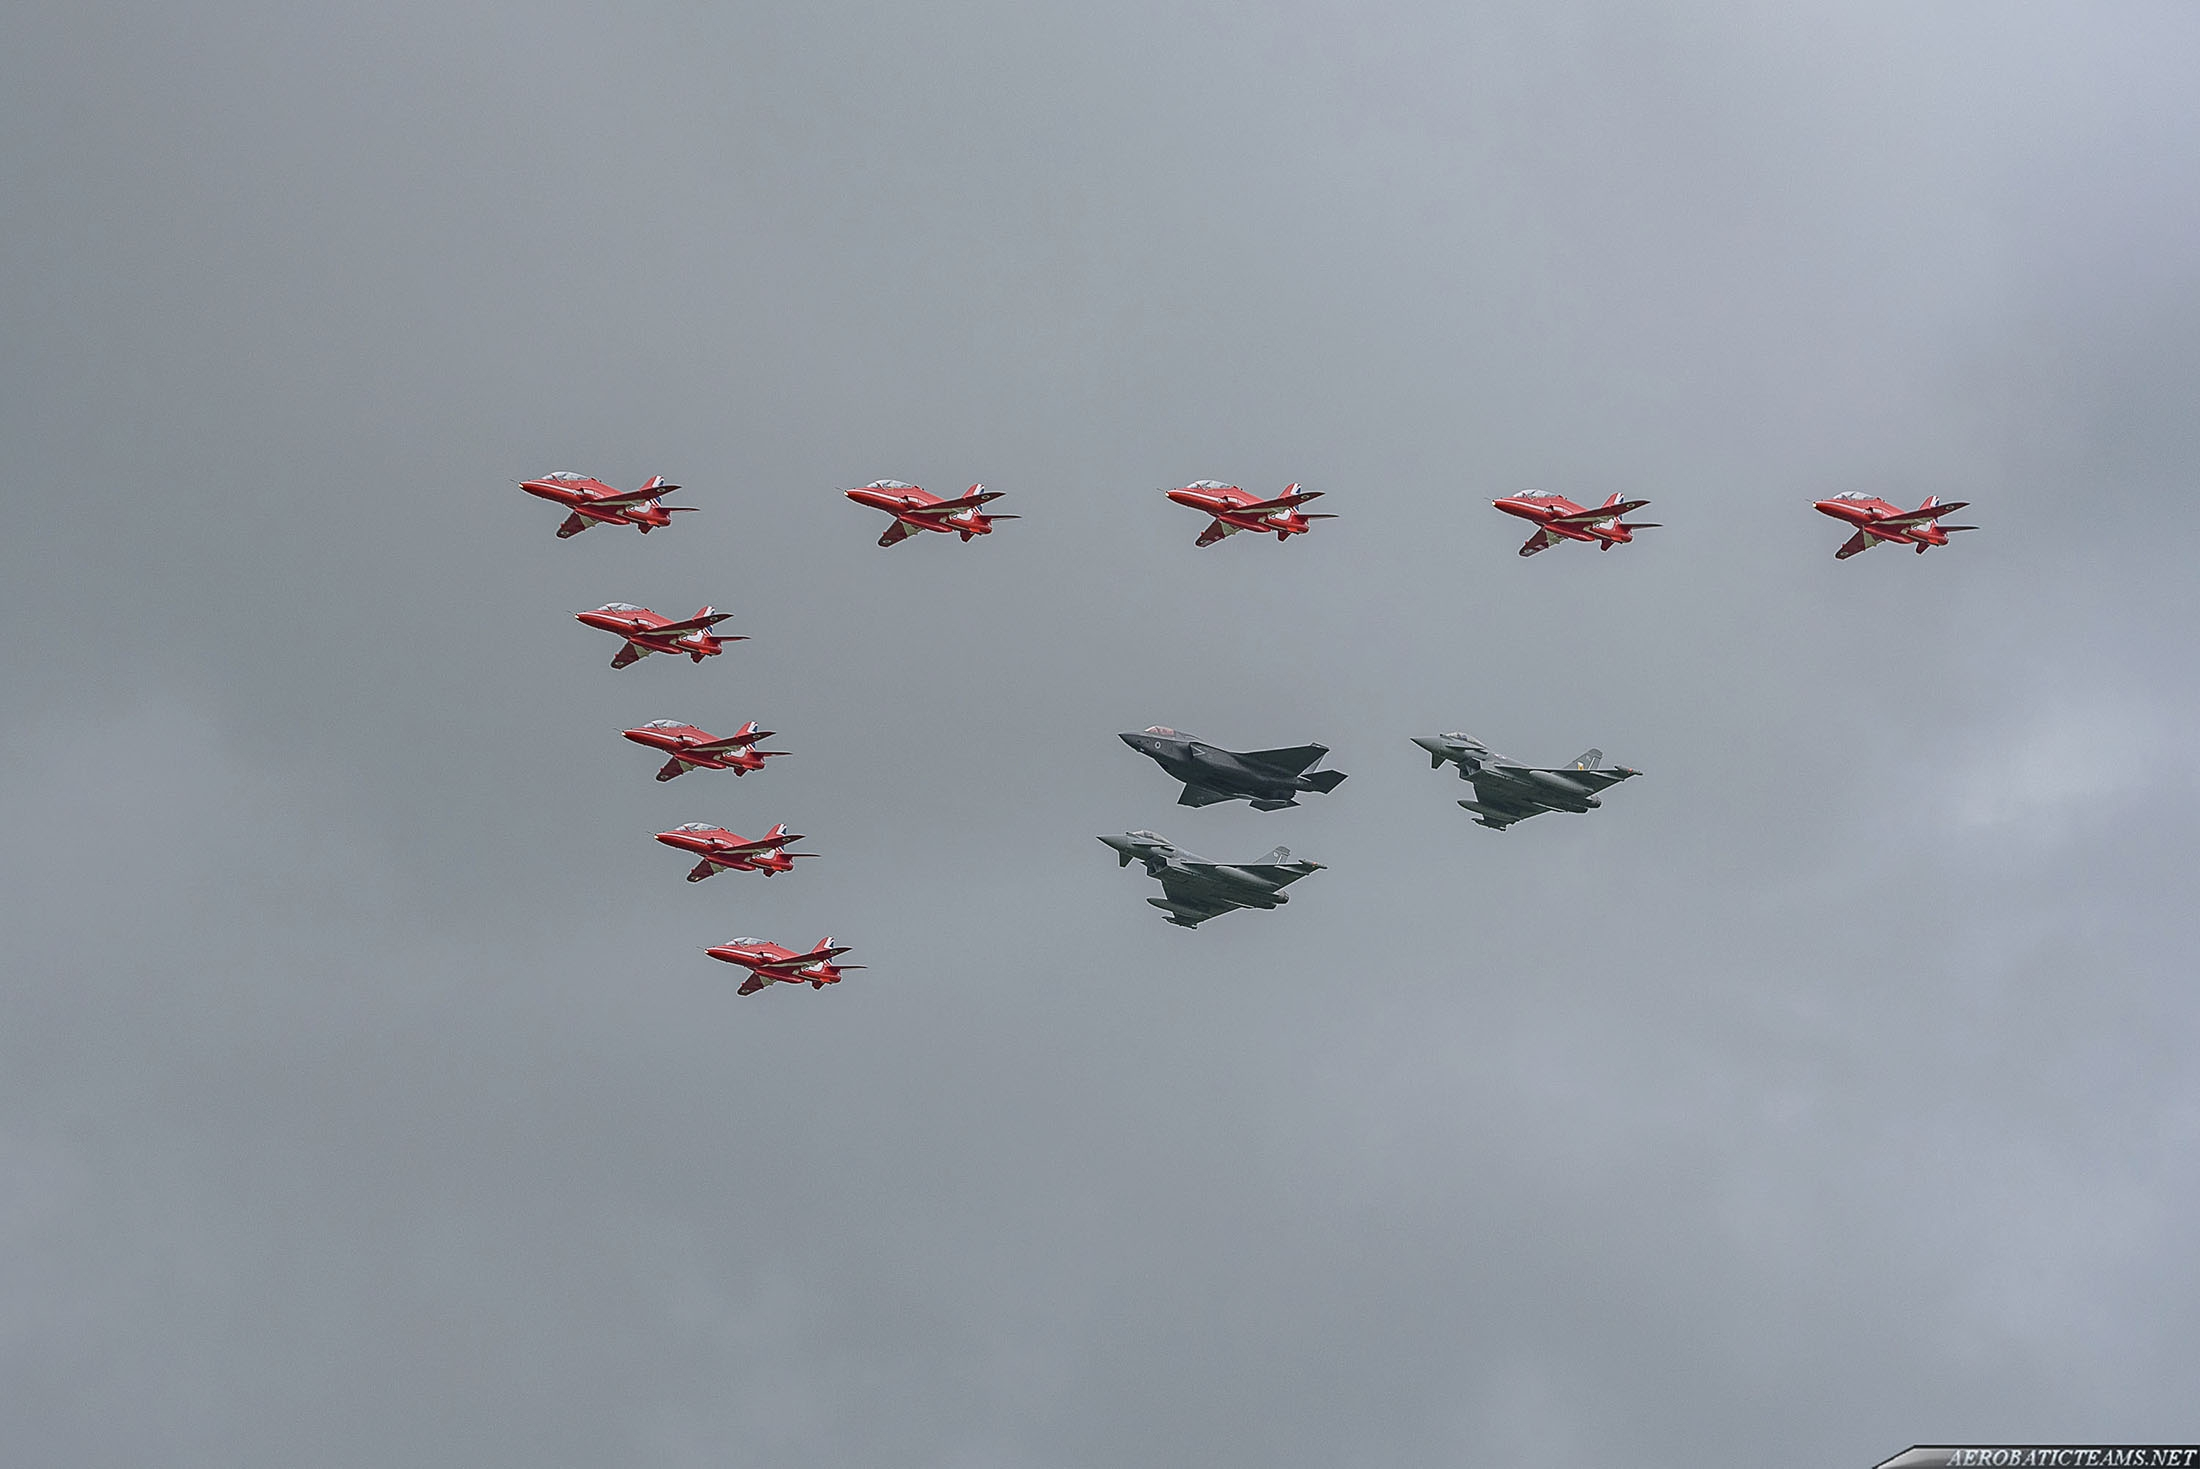 Red Arrows in formation flypast with RAF Typhoons and F-35 just before their display